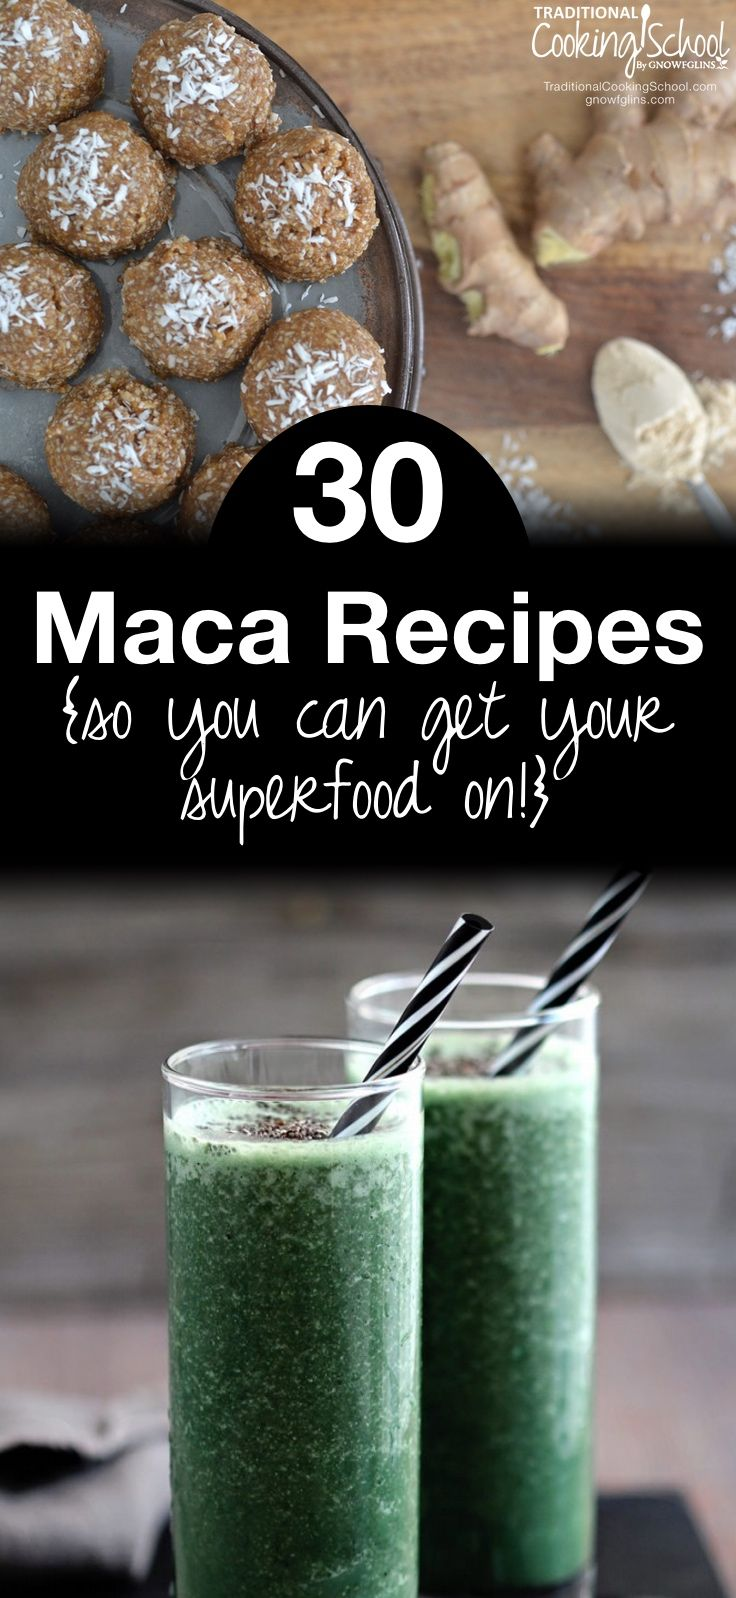 30 Maca Recipes {so you can get your superfood on!} | We all get the feeling like we just need to re-charge our batteries and have more energy. One Peruvian plant root in particular may just make you feel like your batteries are finally charged. Consider this adaptogenic superfood as an amazing addition to your lifestyle -- one that might be the missing link if you experience low energy levels, depression, compromised immunity, or hormonal imbalances. By the time you're done wiping the drool…